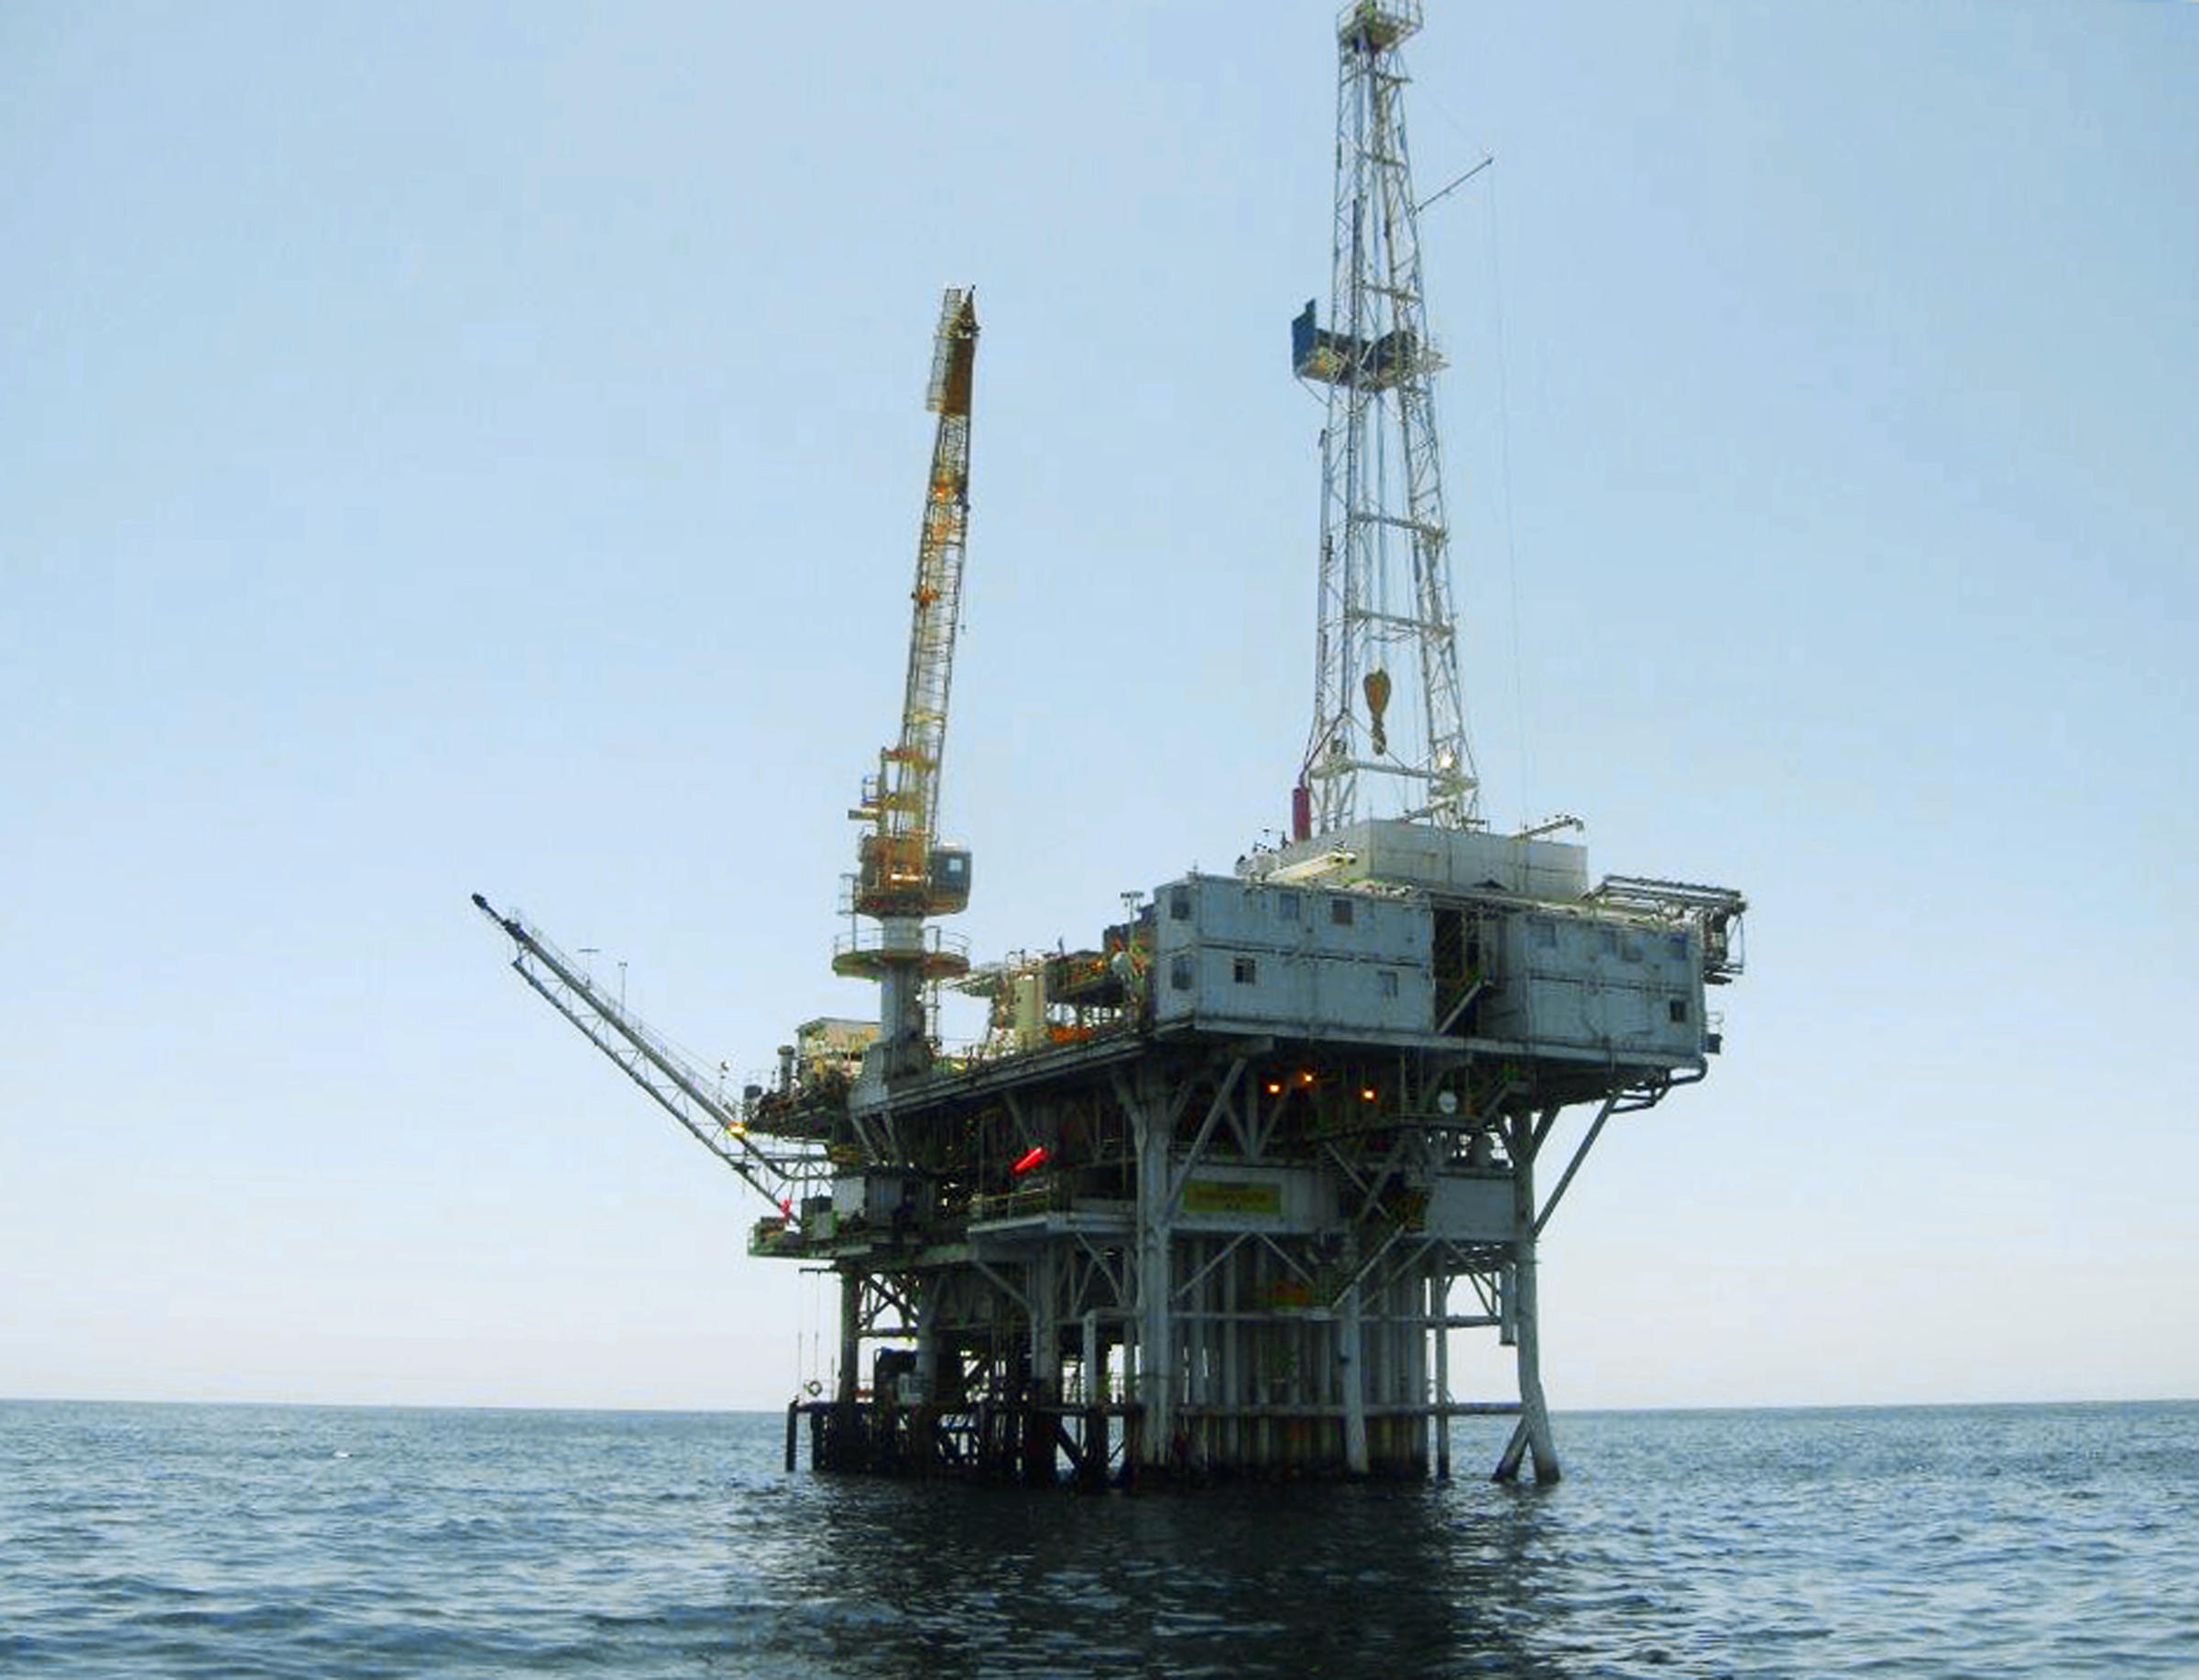 Scrub NY from plan to expand offshore oil drilling